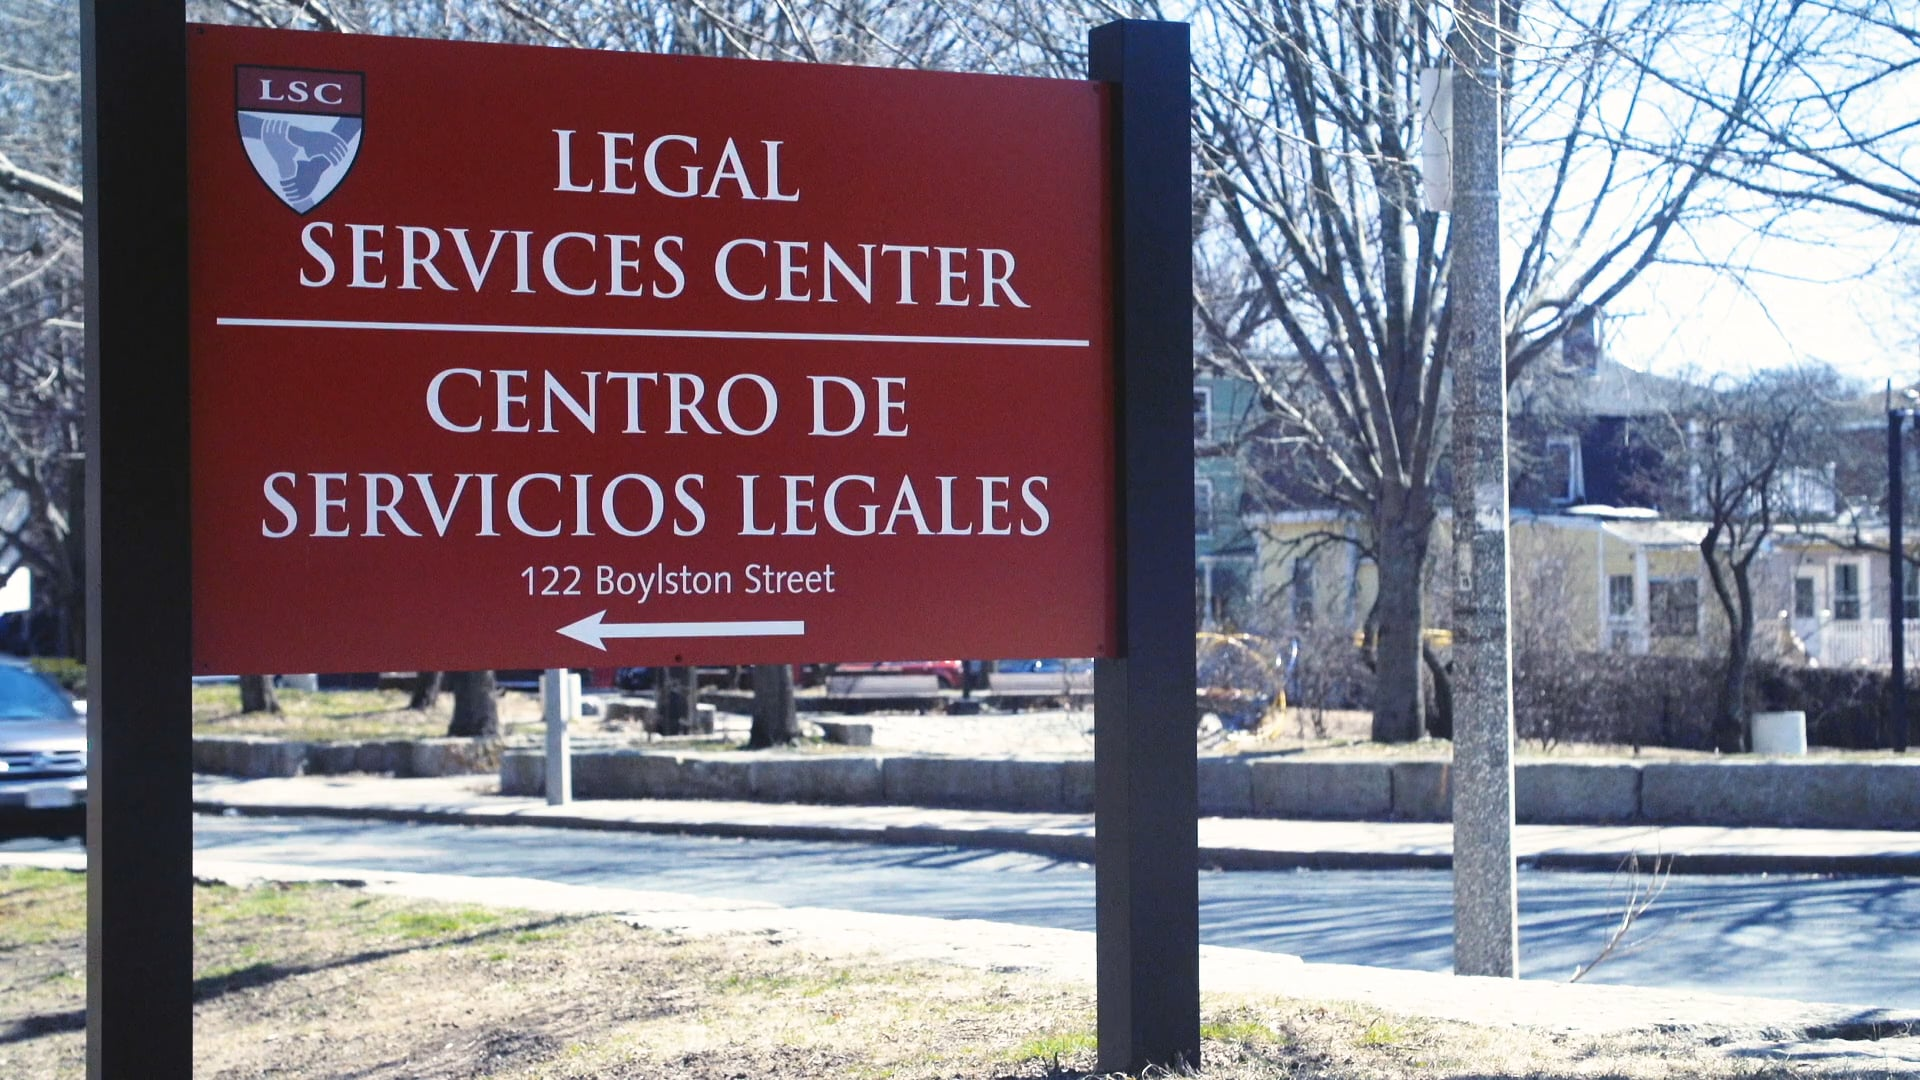 Legal Services Center of Harvard Law School